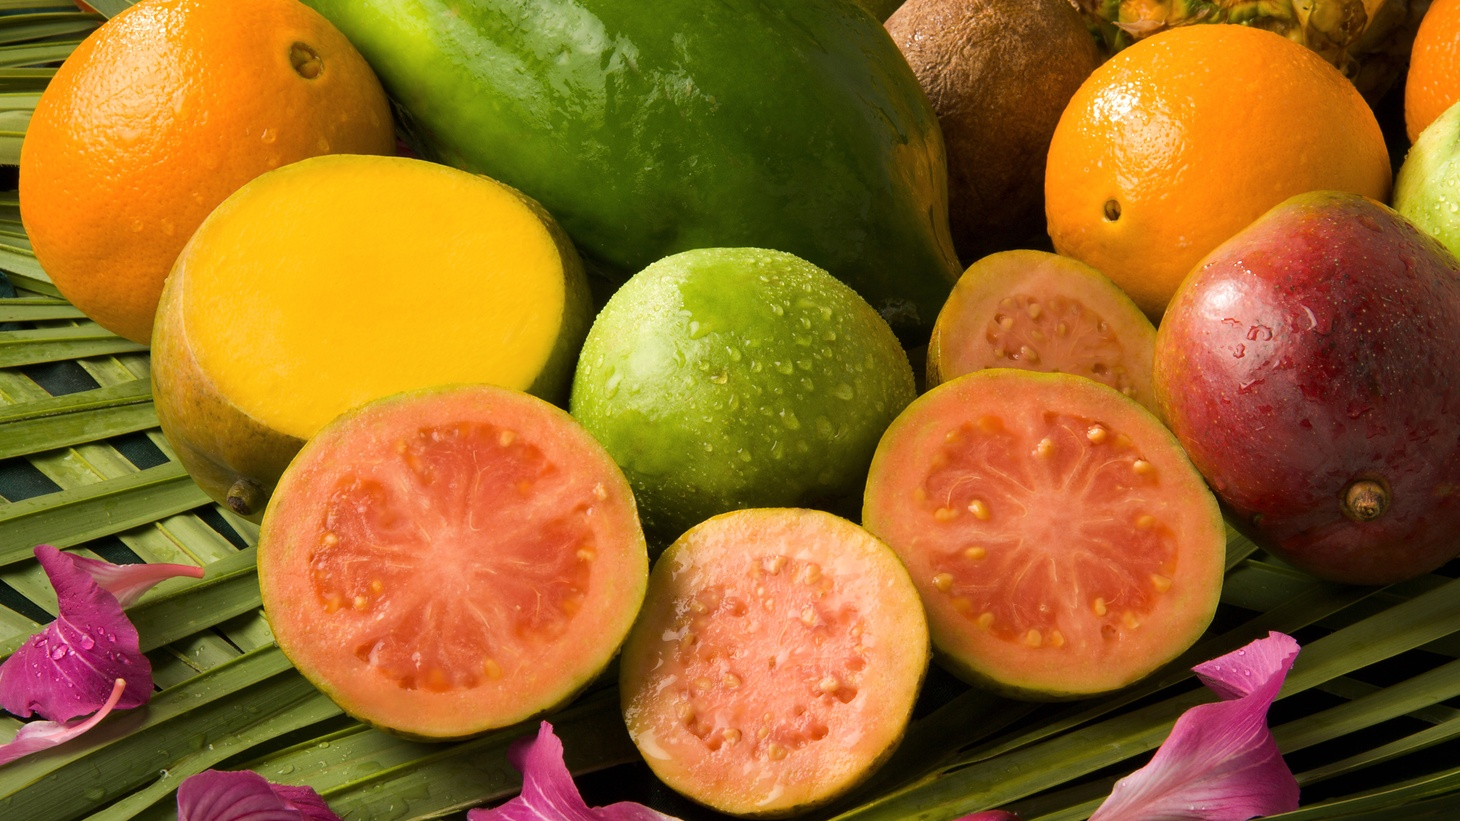 Guava, the juicy, pink, sliced fruit in the center, is high in antioxidants.